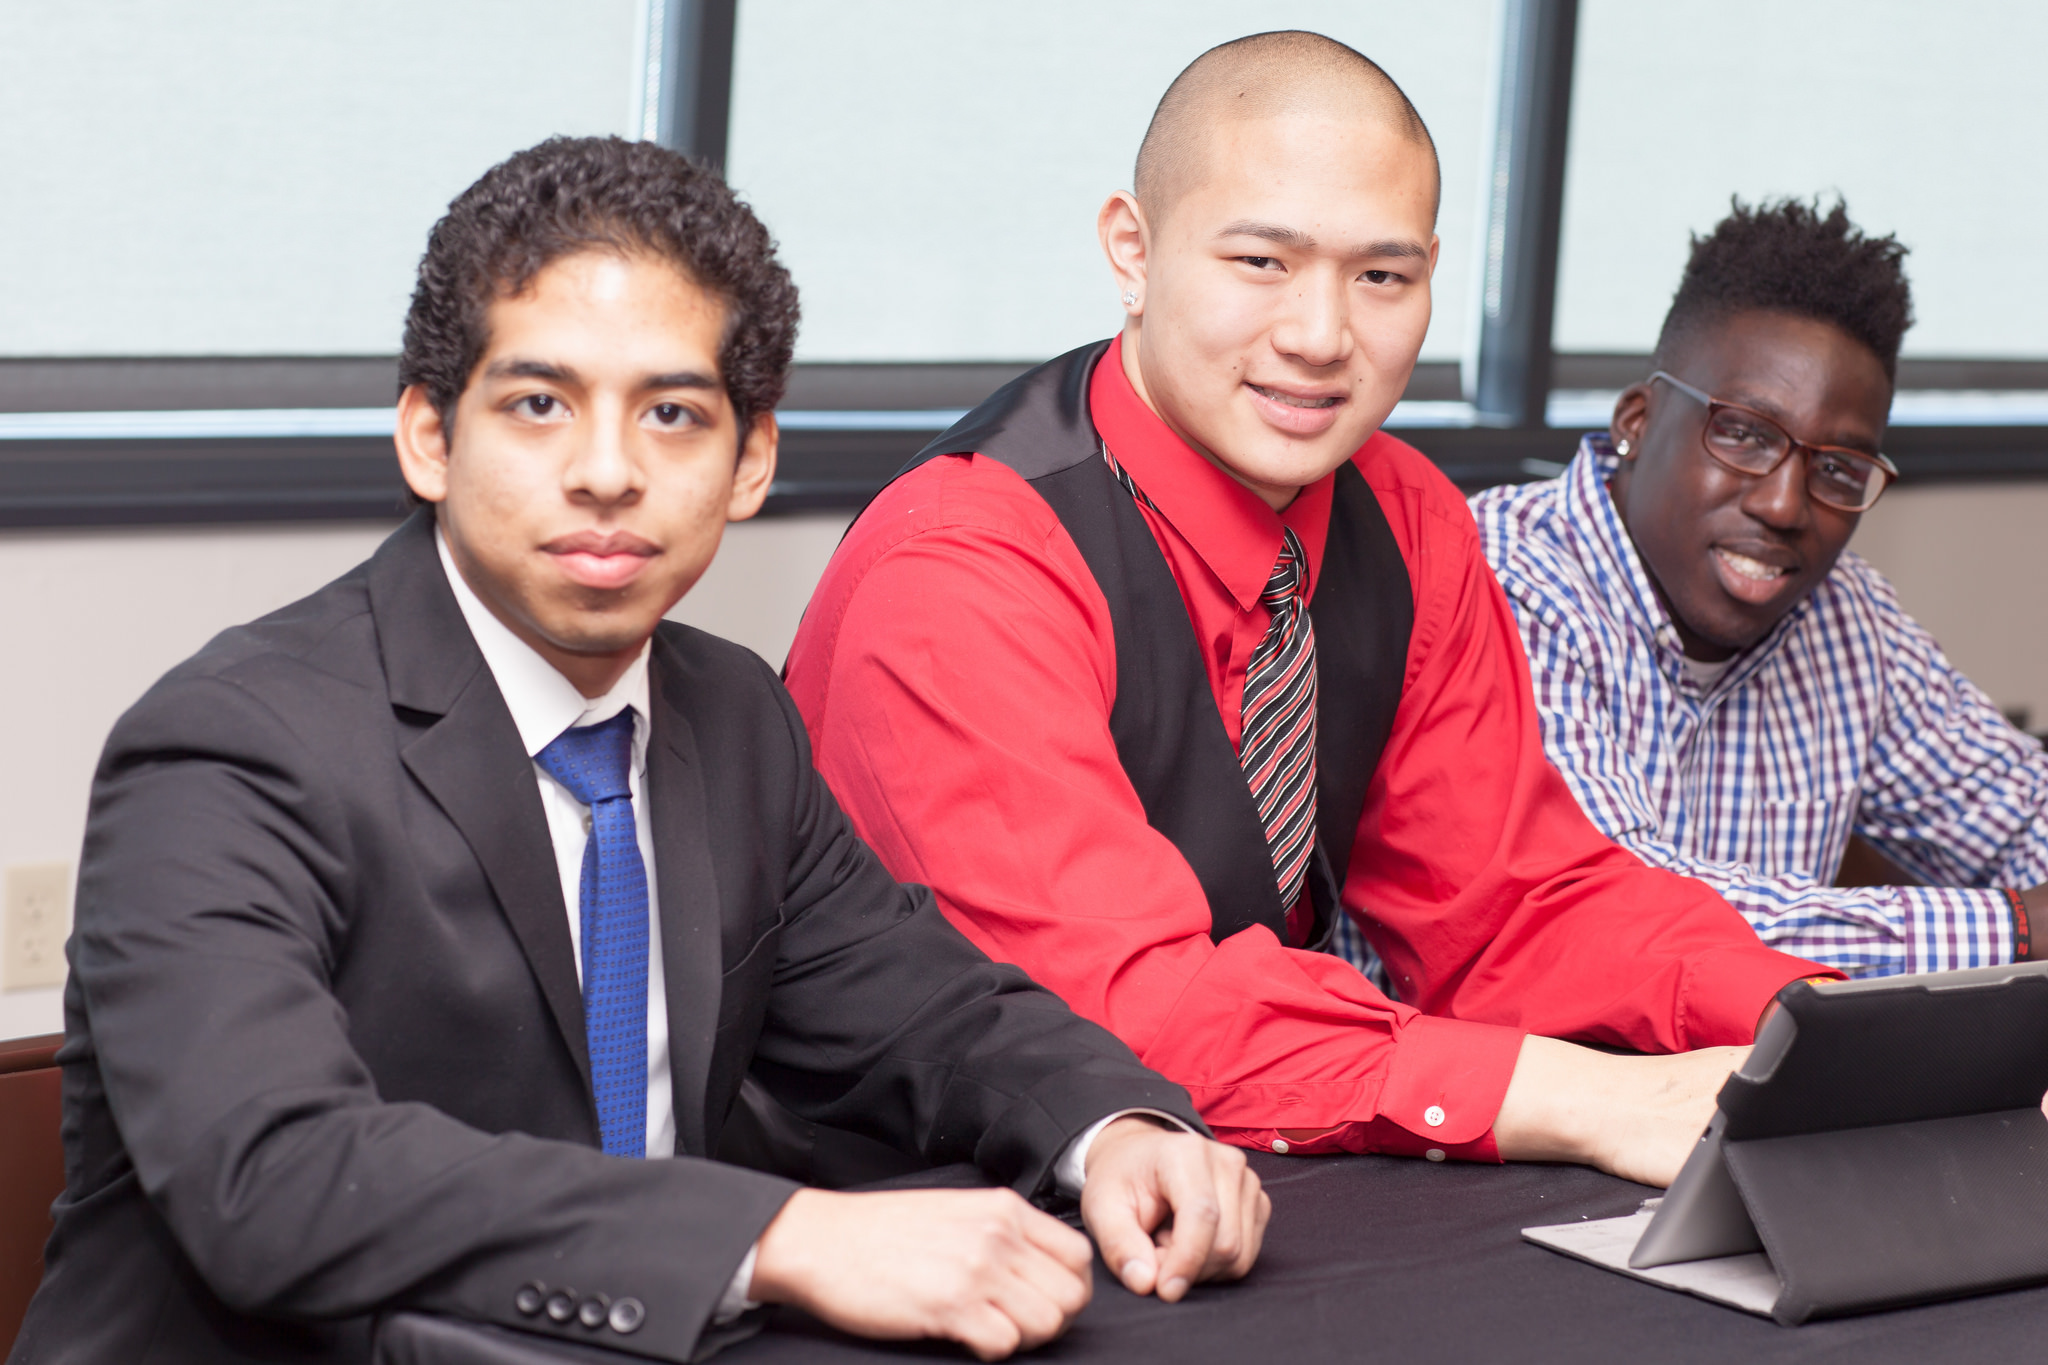 Students at an Execuritive Leadership Speakers Series event